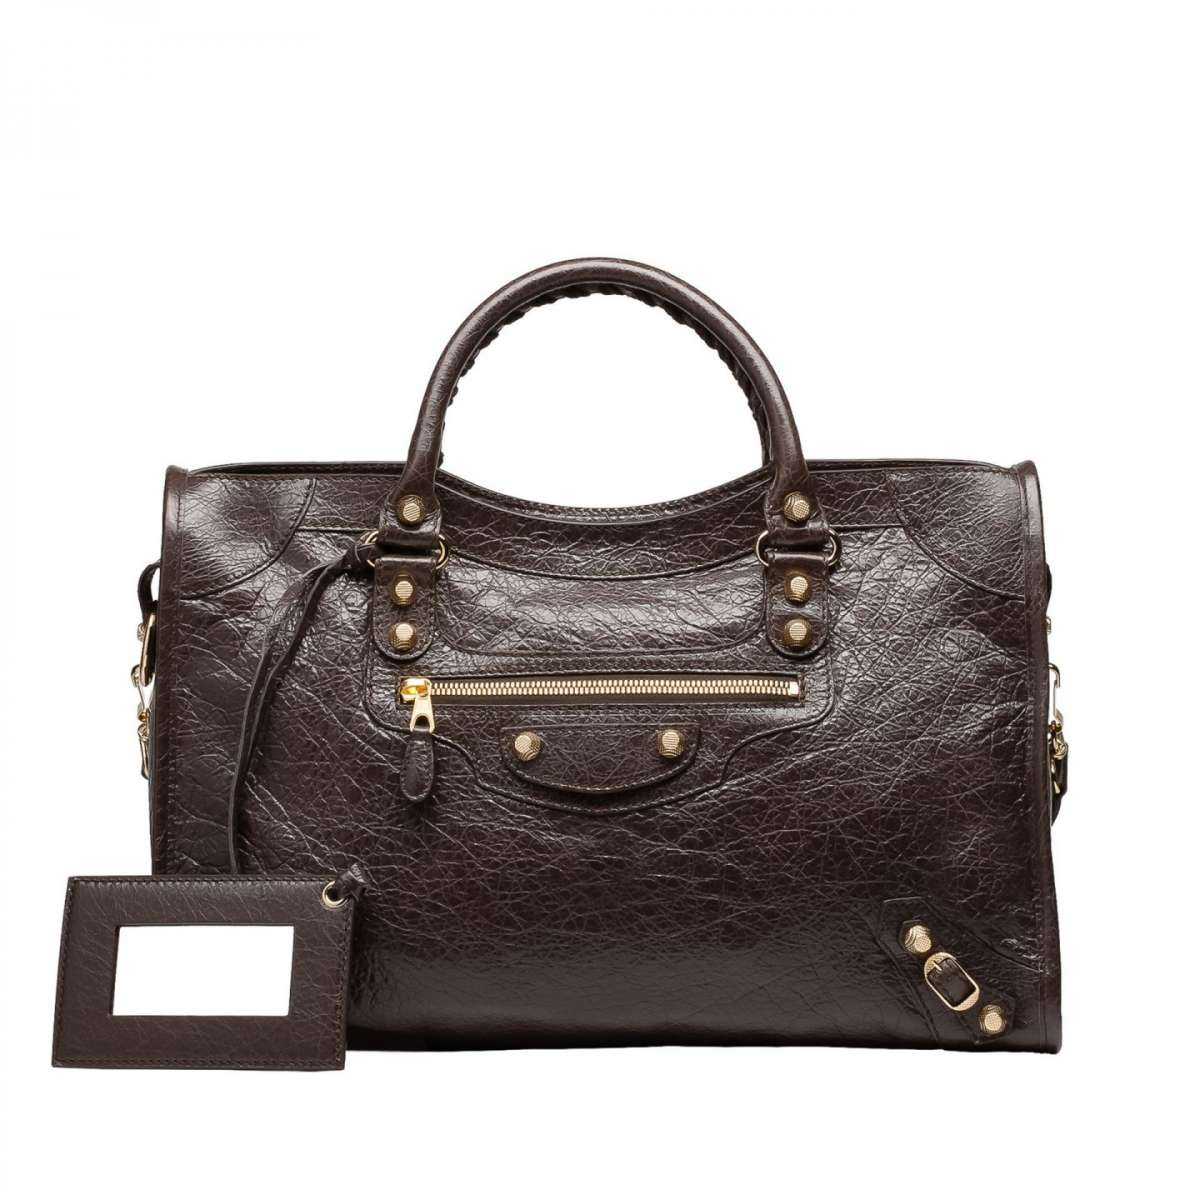 Handbag Giant 12 marrone